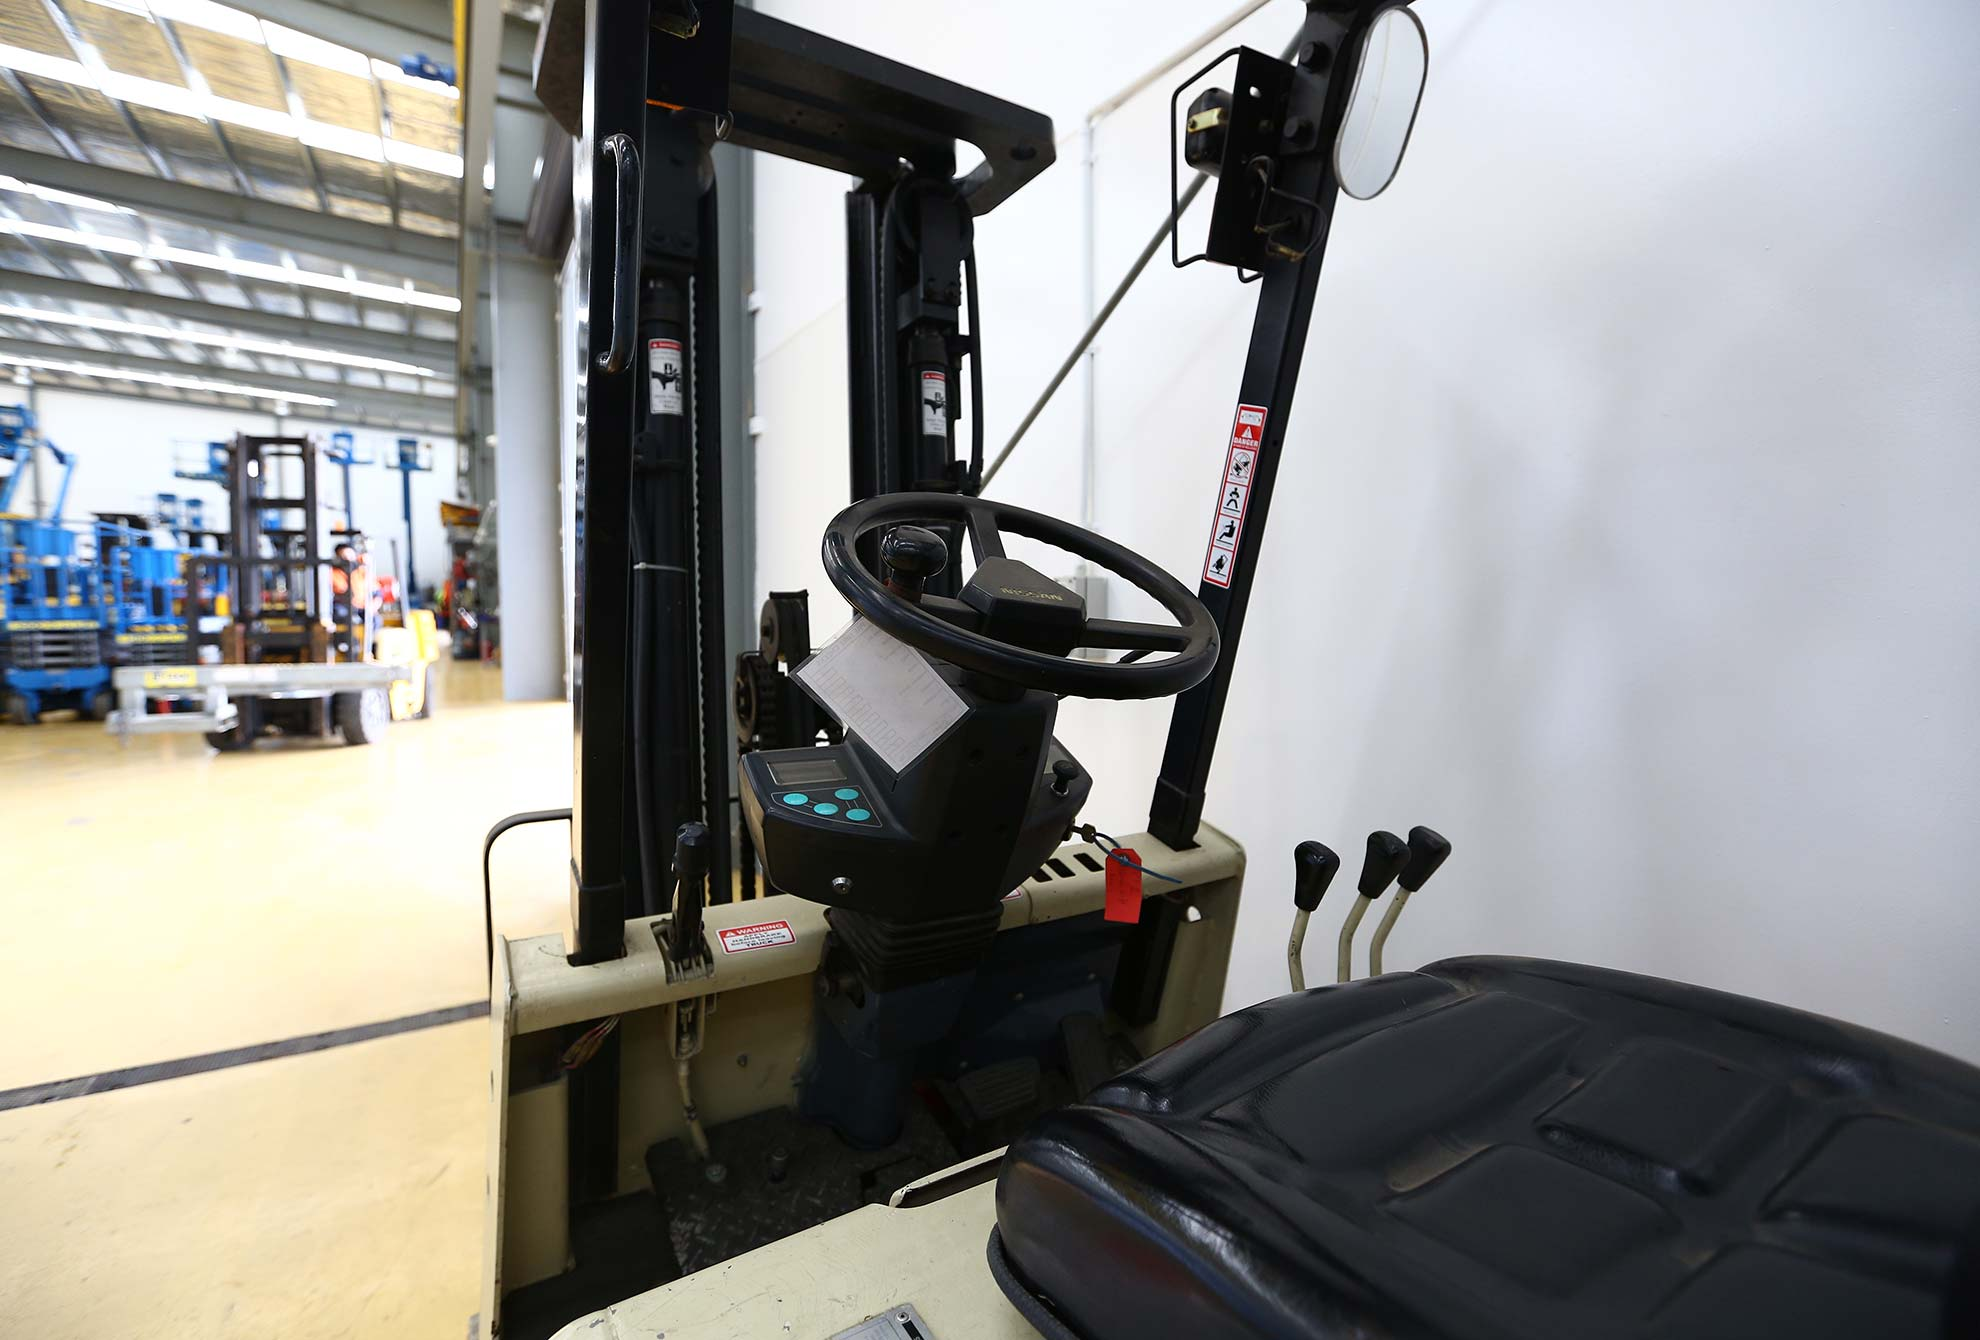 2.5 Counter Balance Forklift for Hire